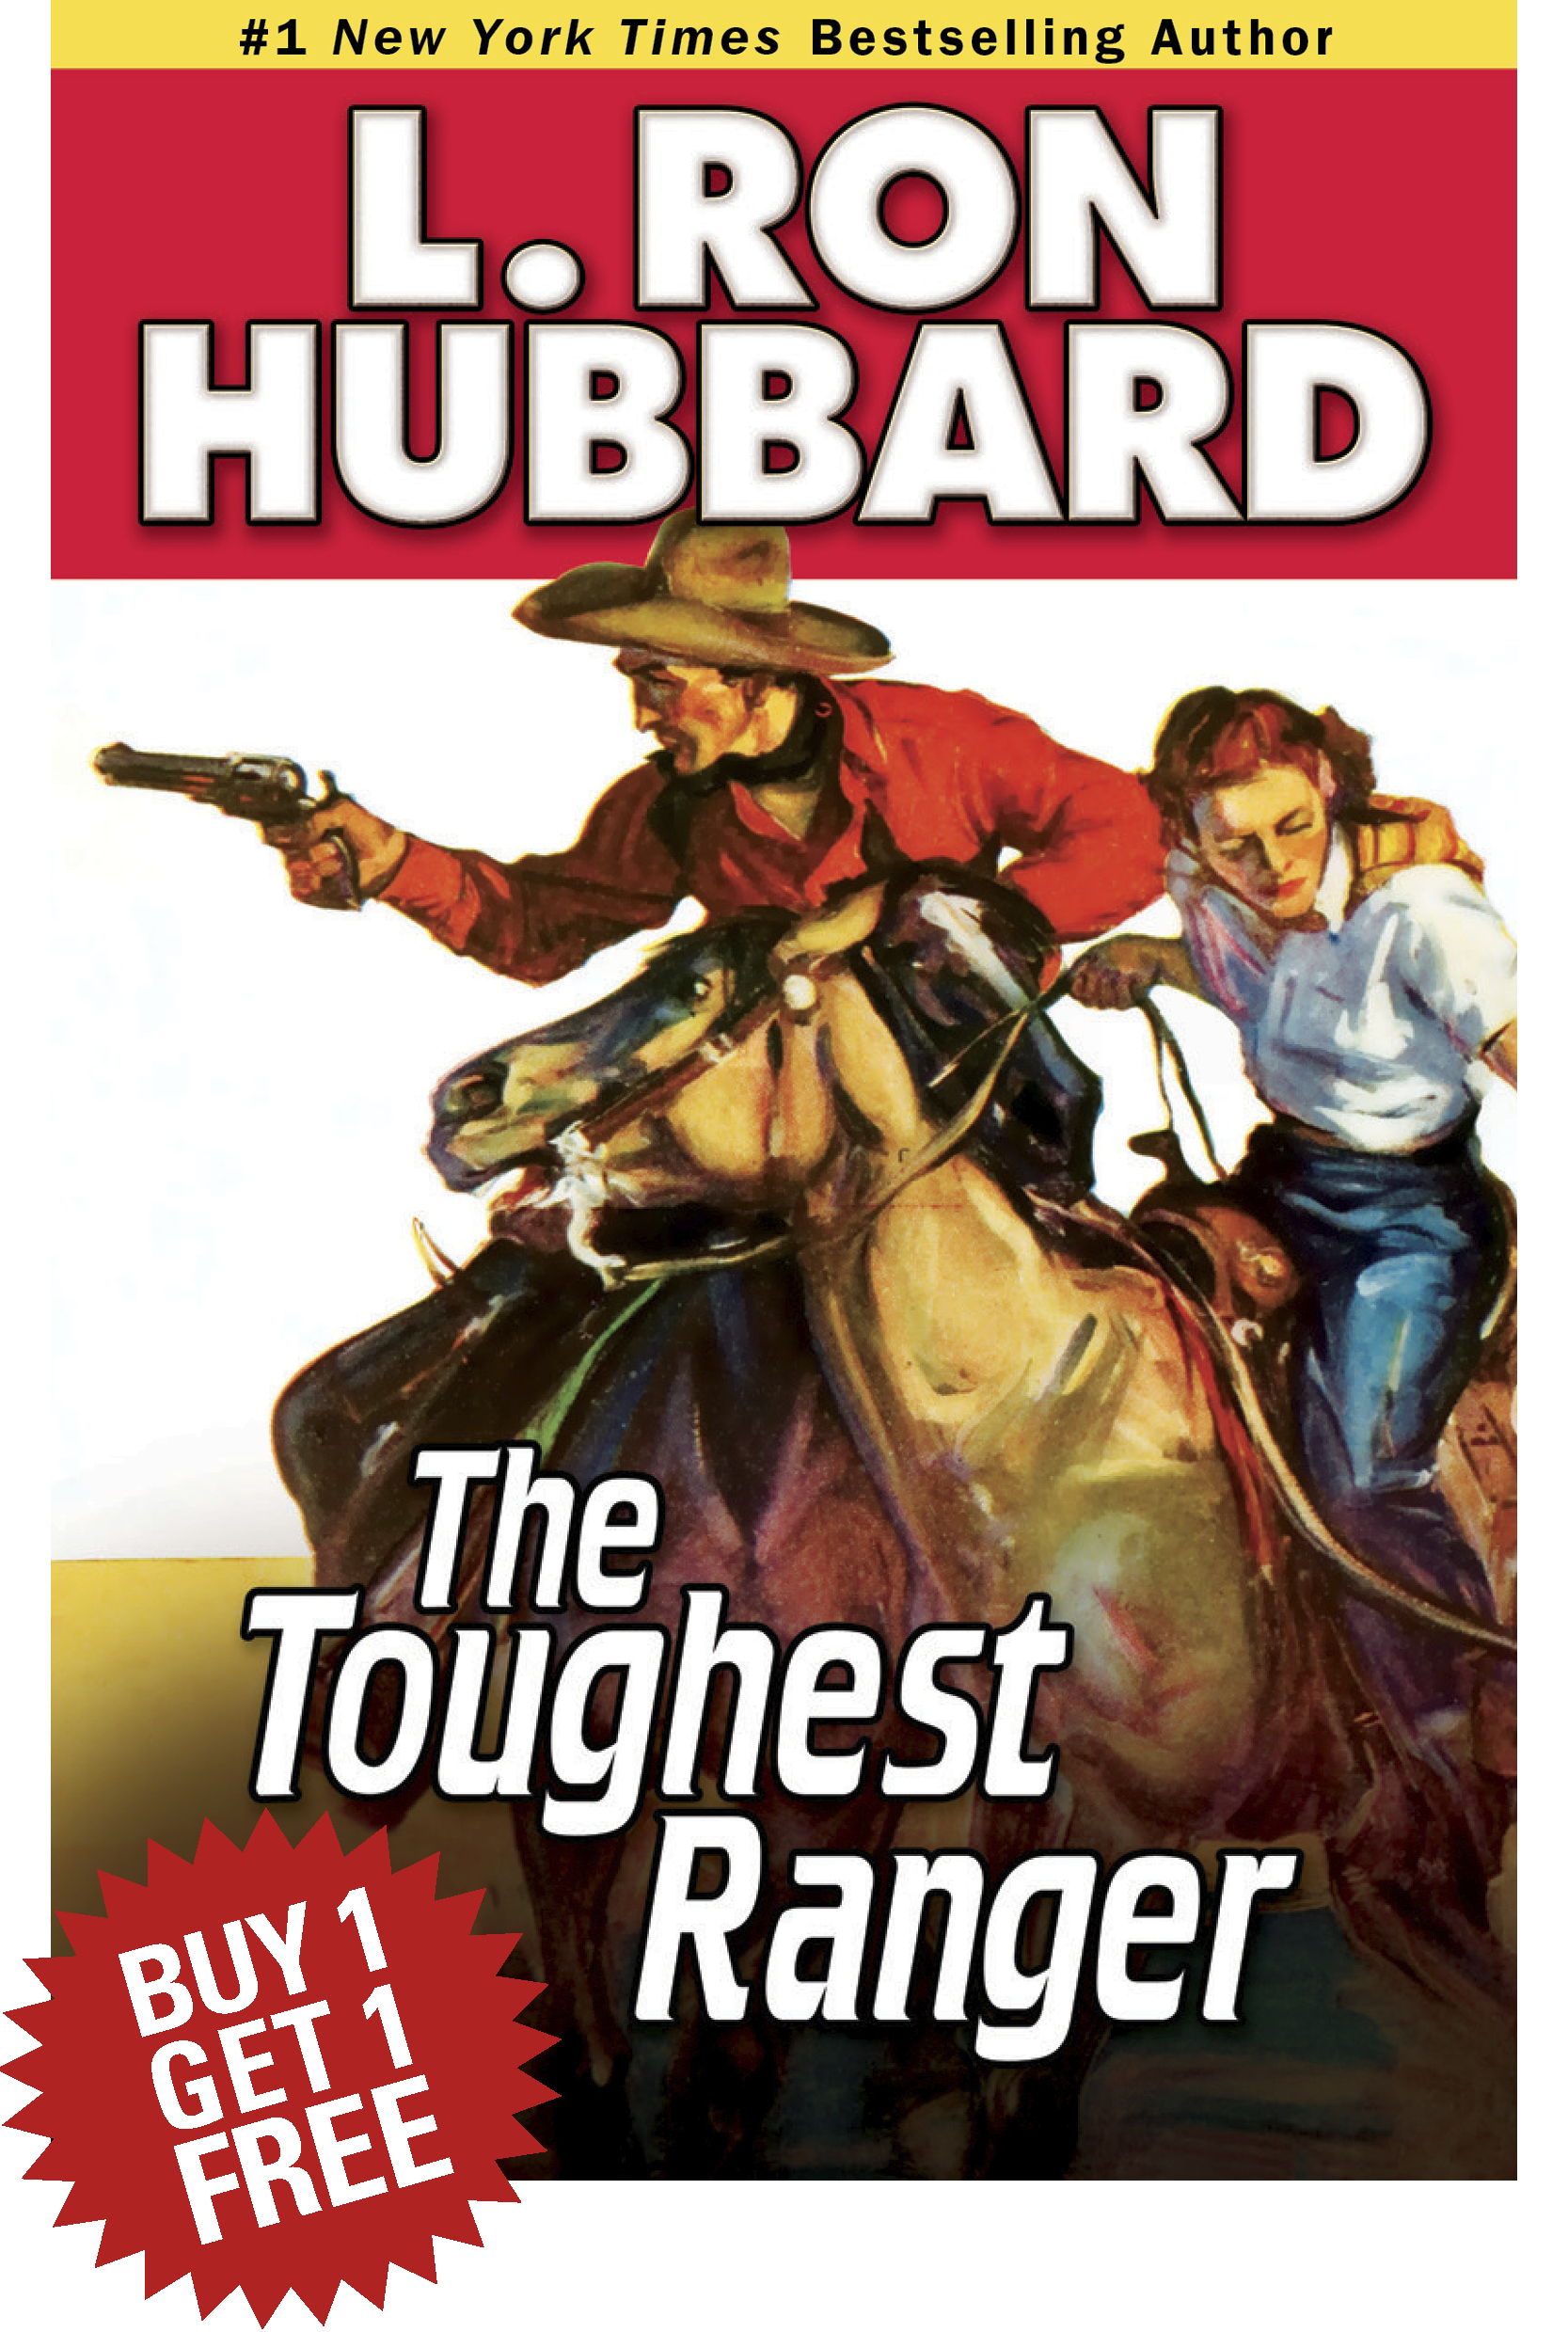 Toughest Ranger Book Offer